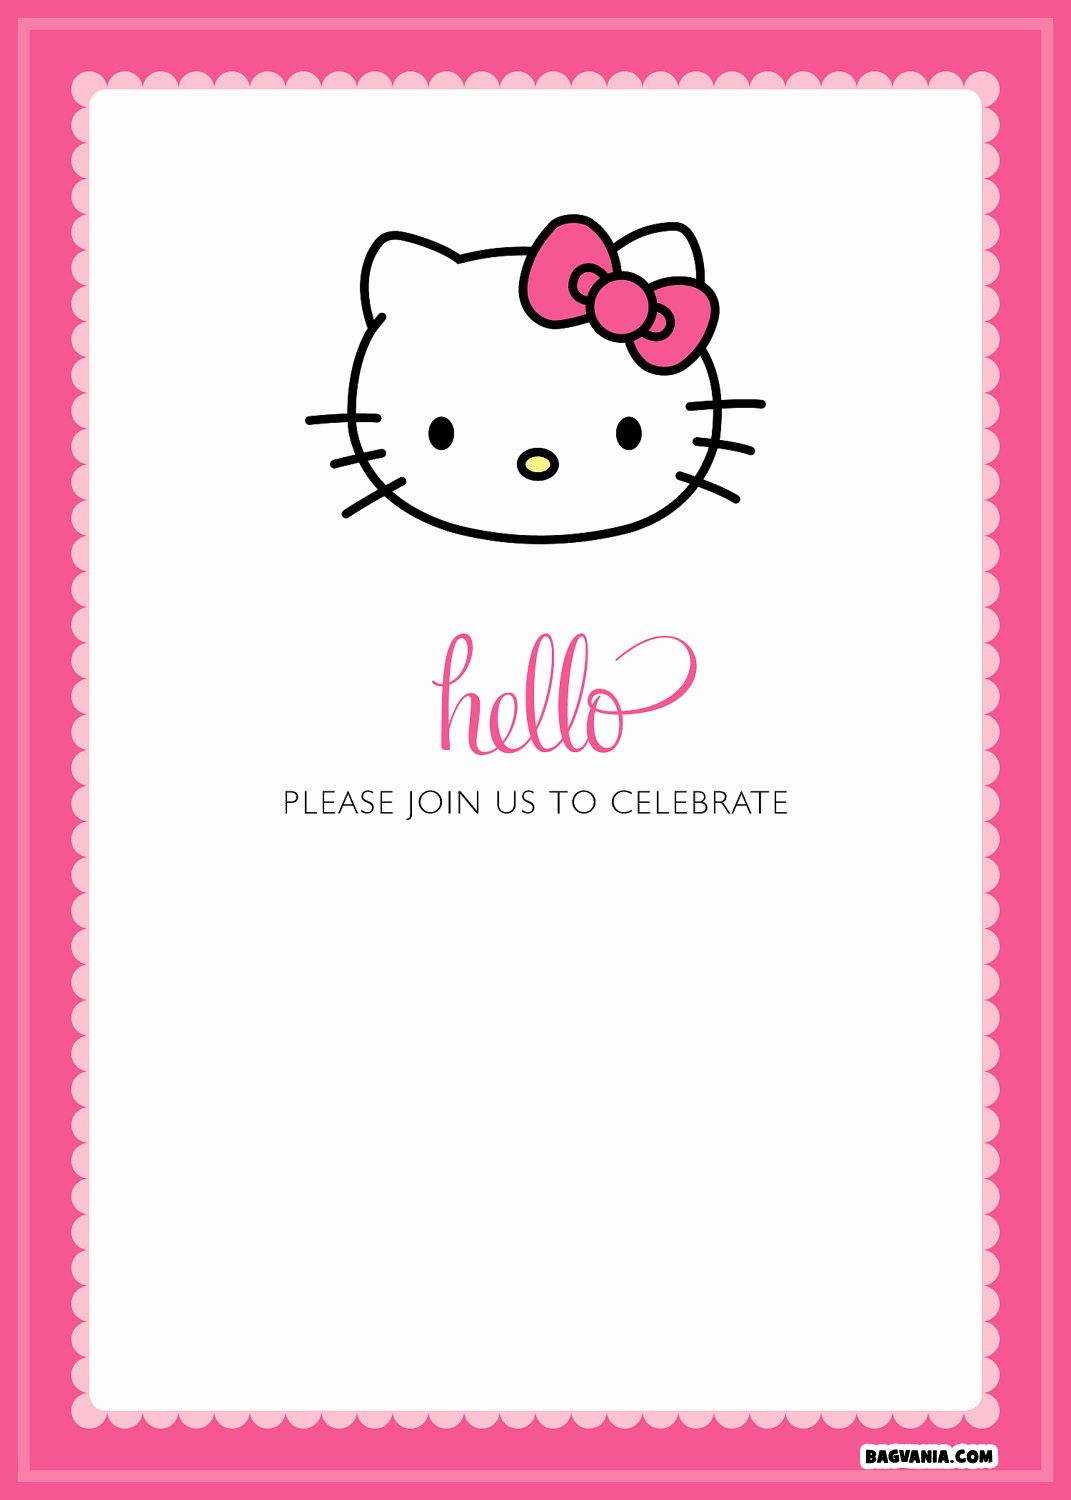 Hello Kitty Invitation Template Inspirational Free Printable Hello Kitty Birthday Invitations – Bagvania